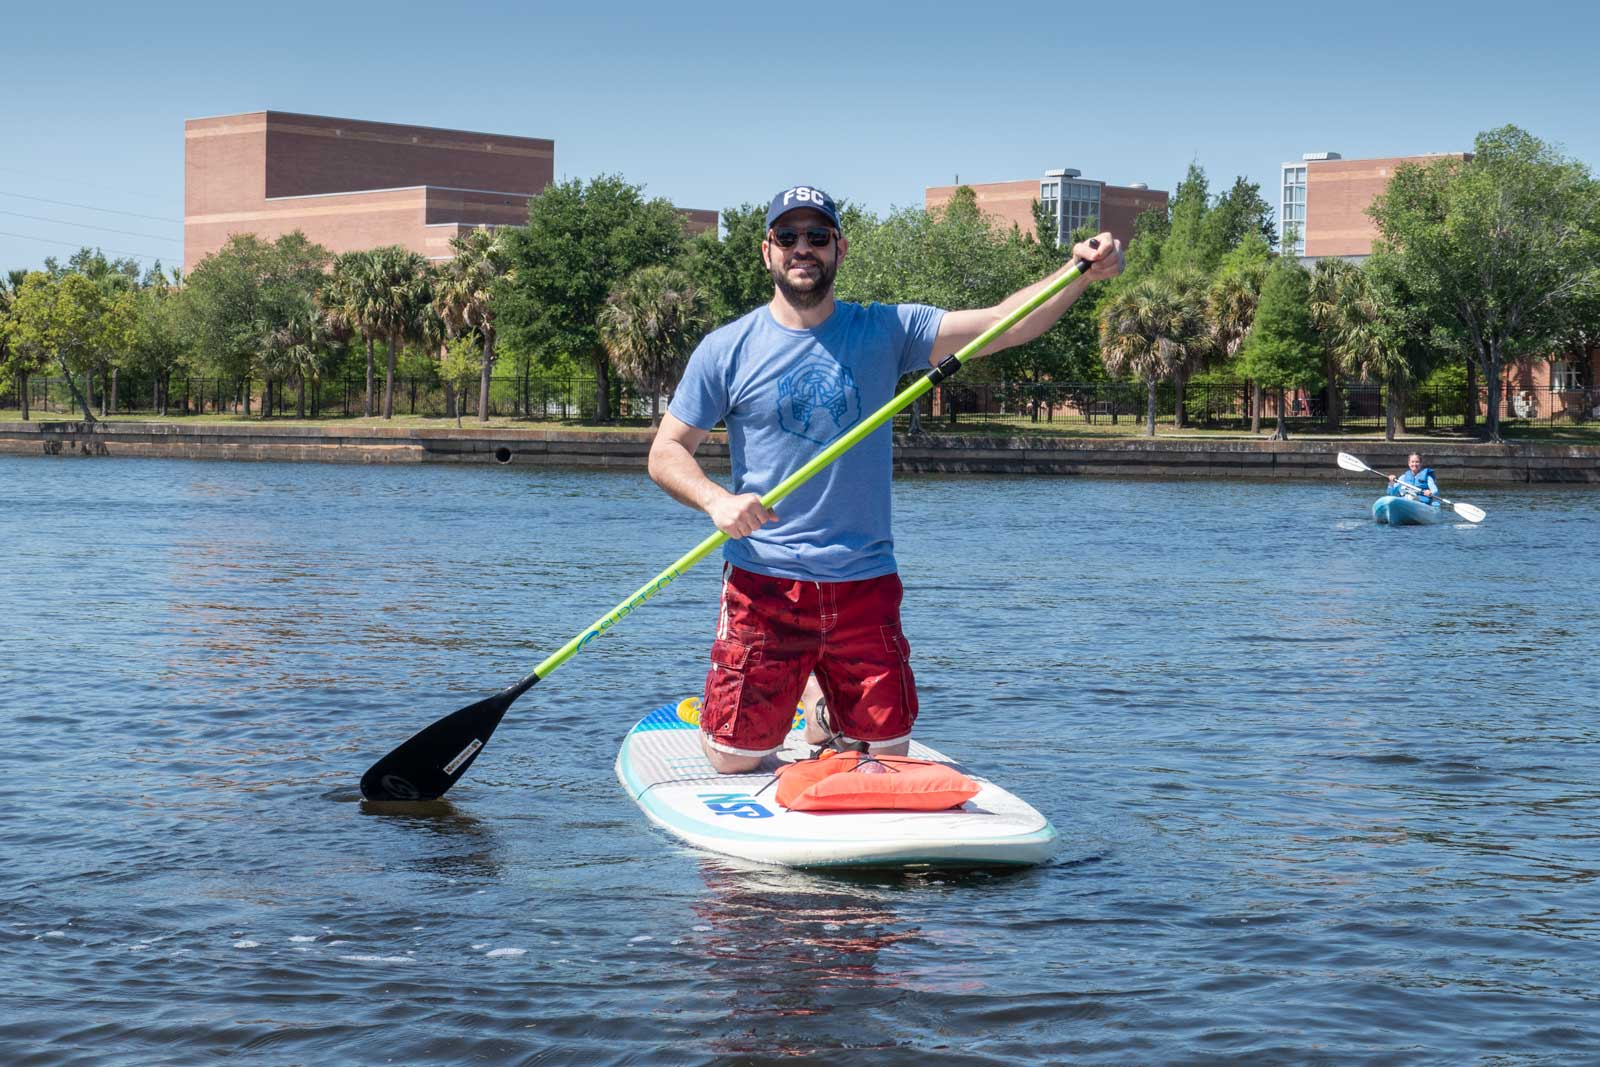 Brian on a paddleboard Downtown Tampa